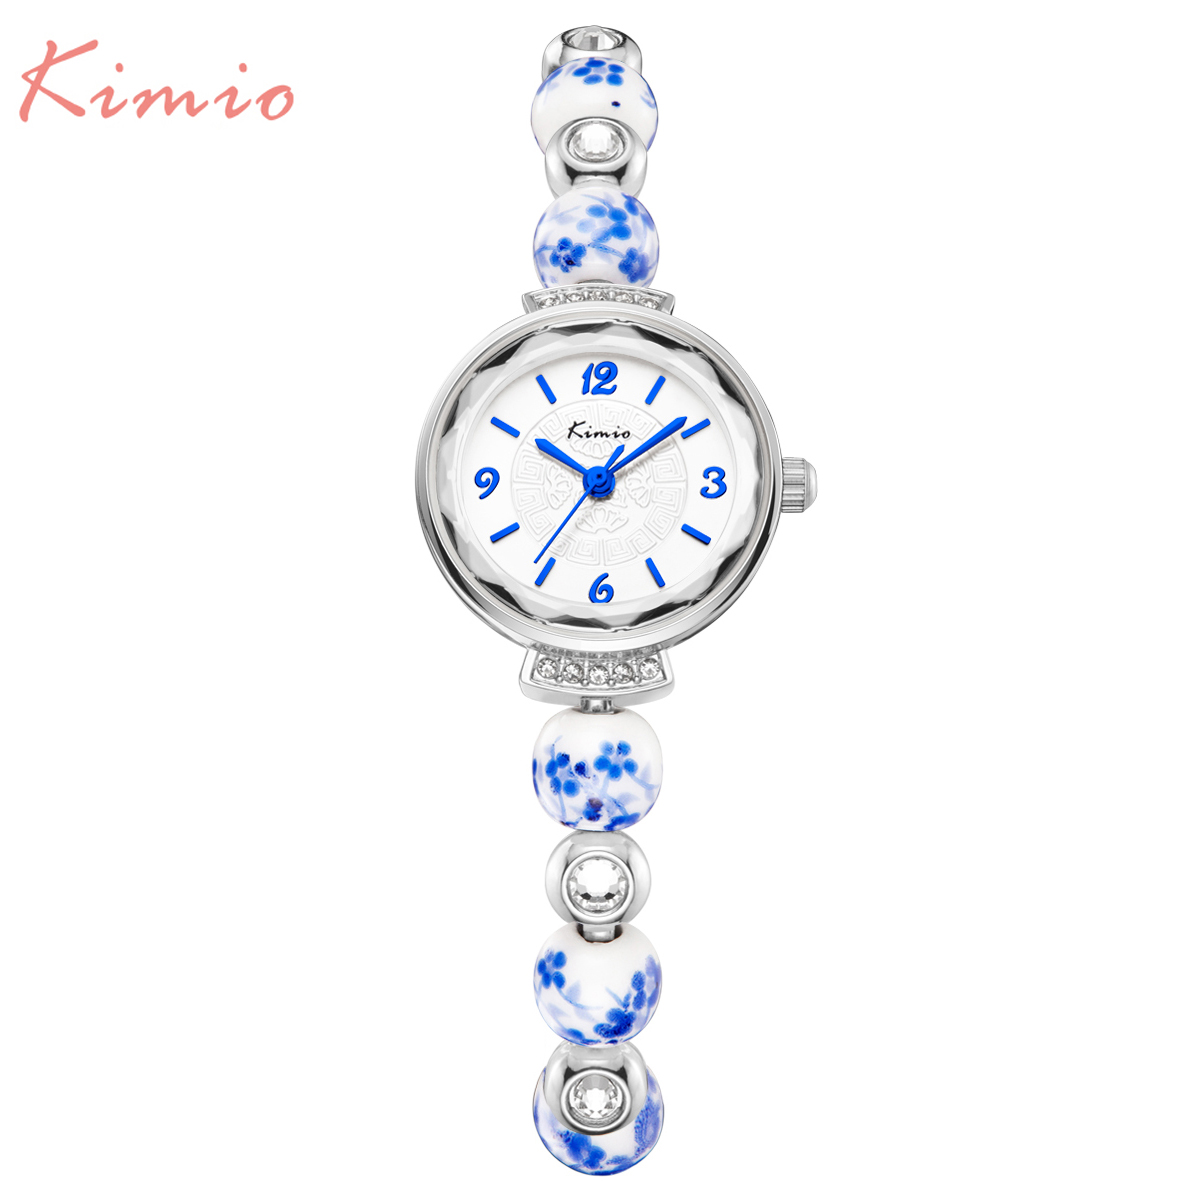 New Fashion Kimio Chinese style luxury watches Women quartz Dress bracelet watch waterproof ceramics ladies wristwatch with box kimio new fashion leather strap women quartz casual bracelet watch clock female ladies girl dress wristwatch relogio and box